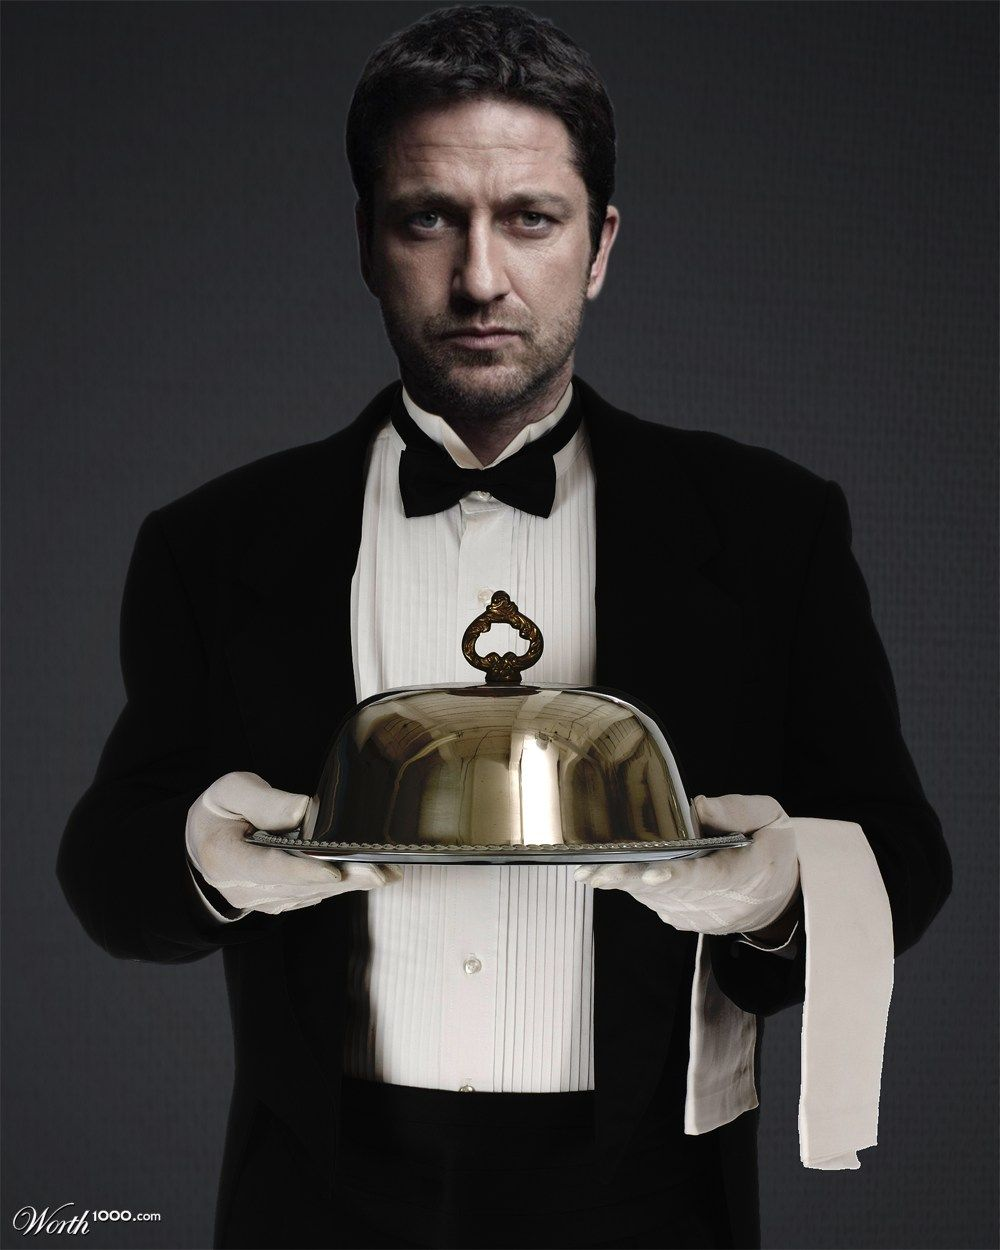 THE Butler - i wish him to serve us breakfast at weekends with his accent!